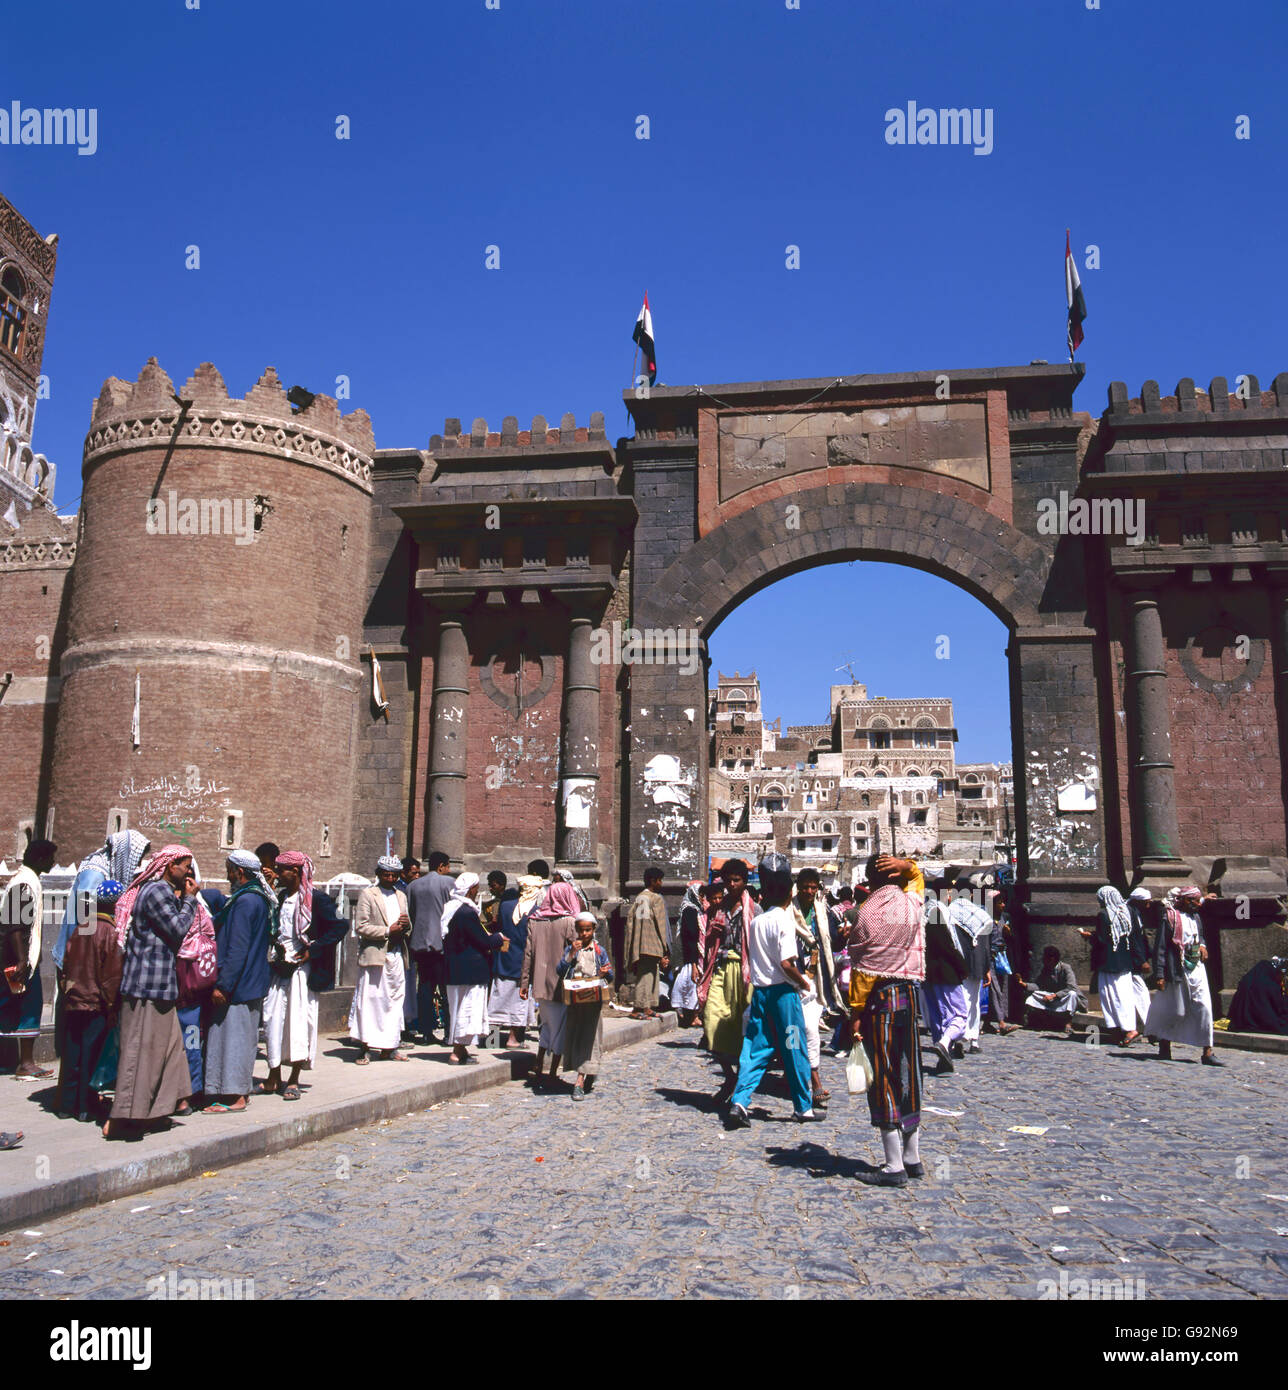 SANA'A,YEMEN-MARCH 03,2003 - The main gate to the old city in the capital of Yemen Stock Photo